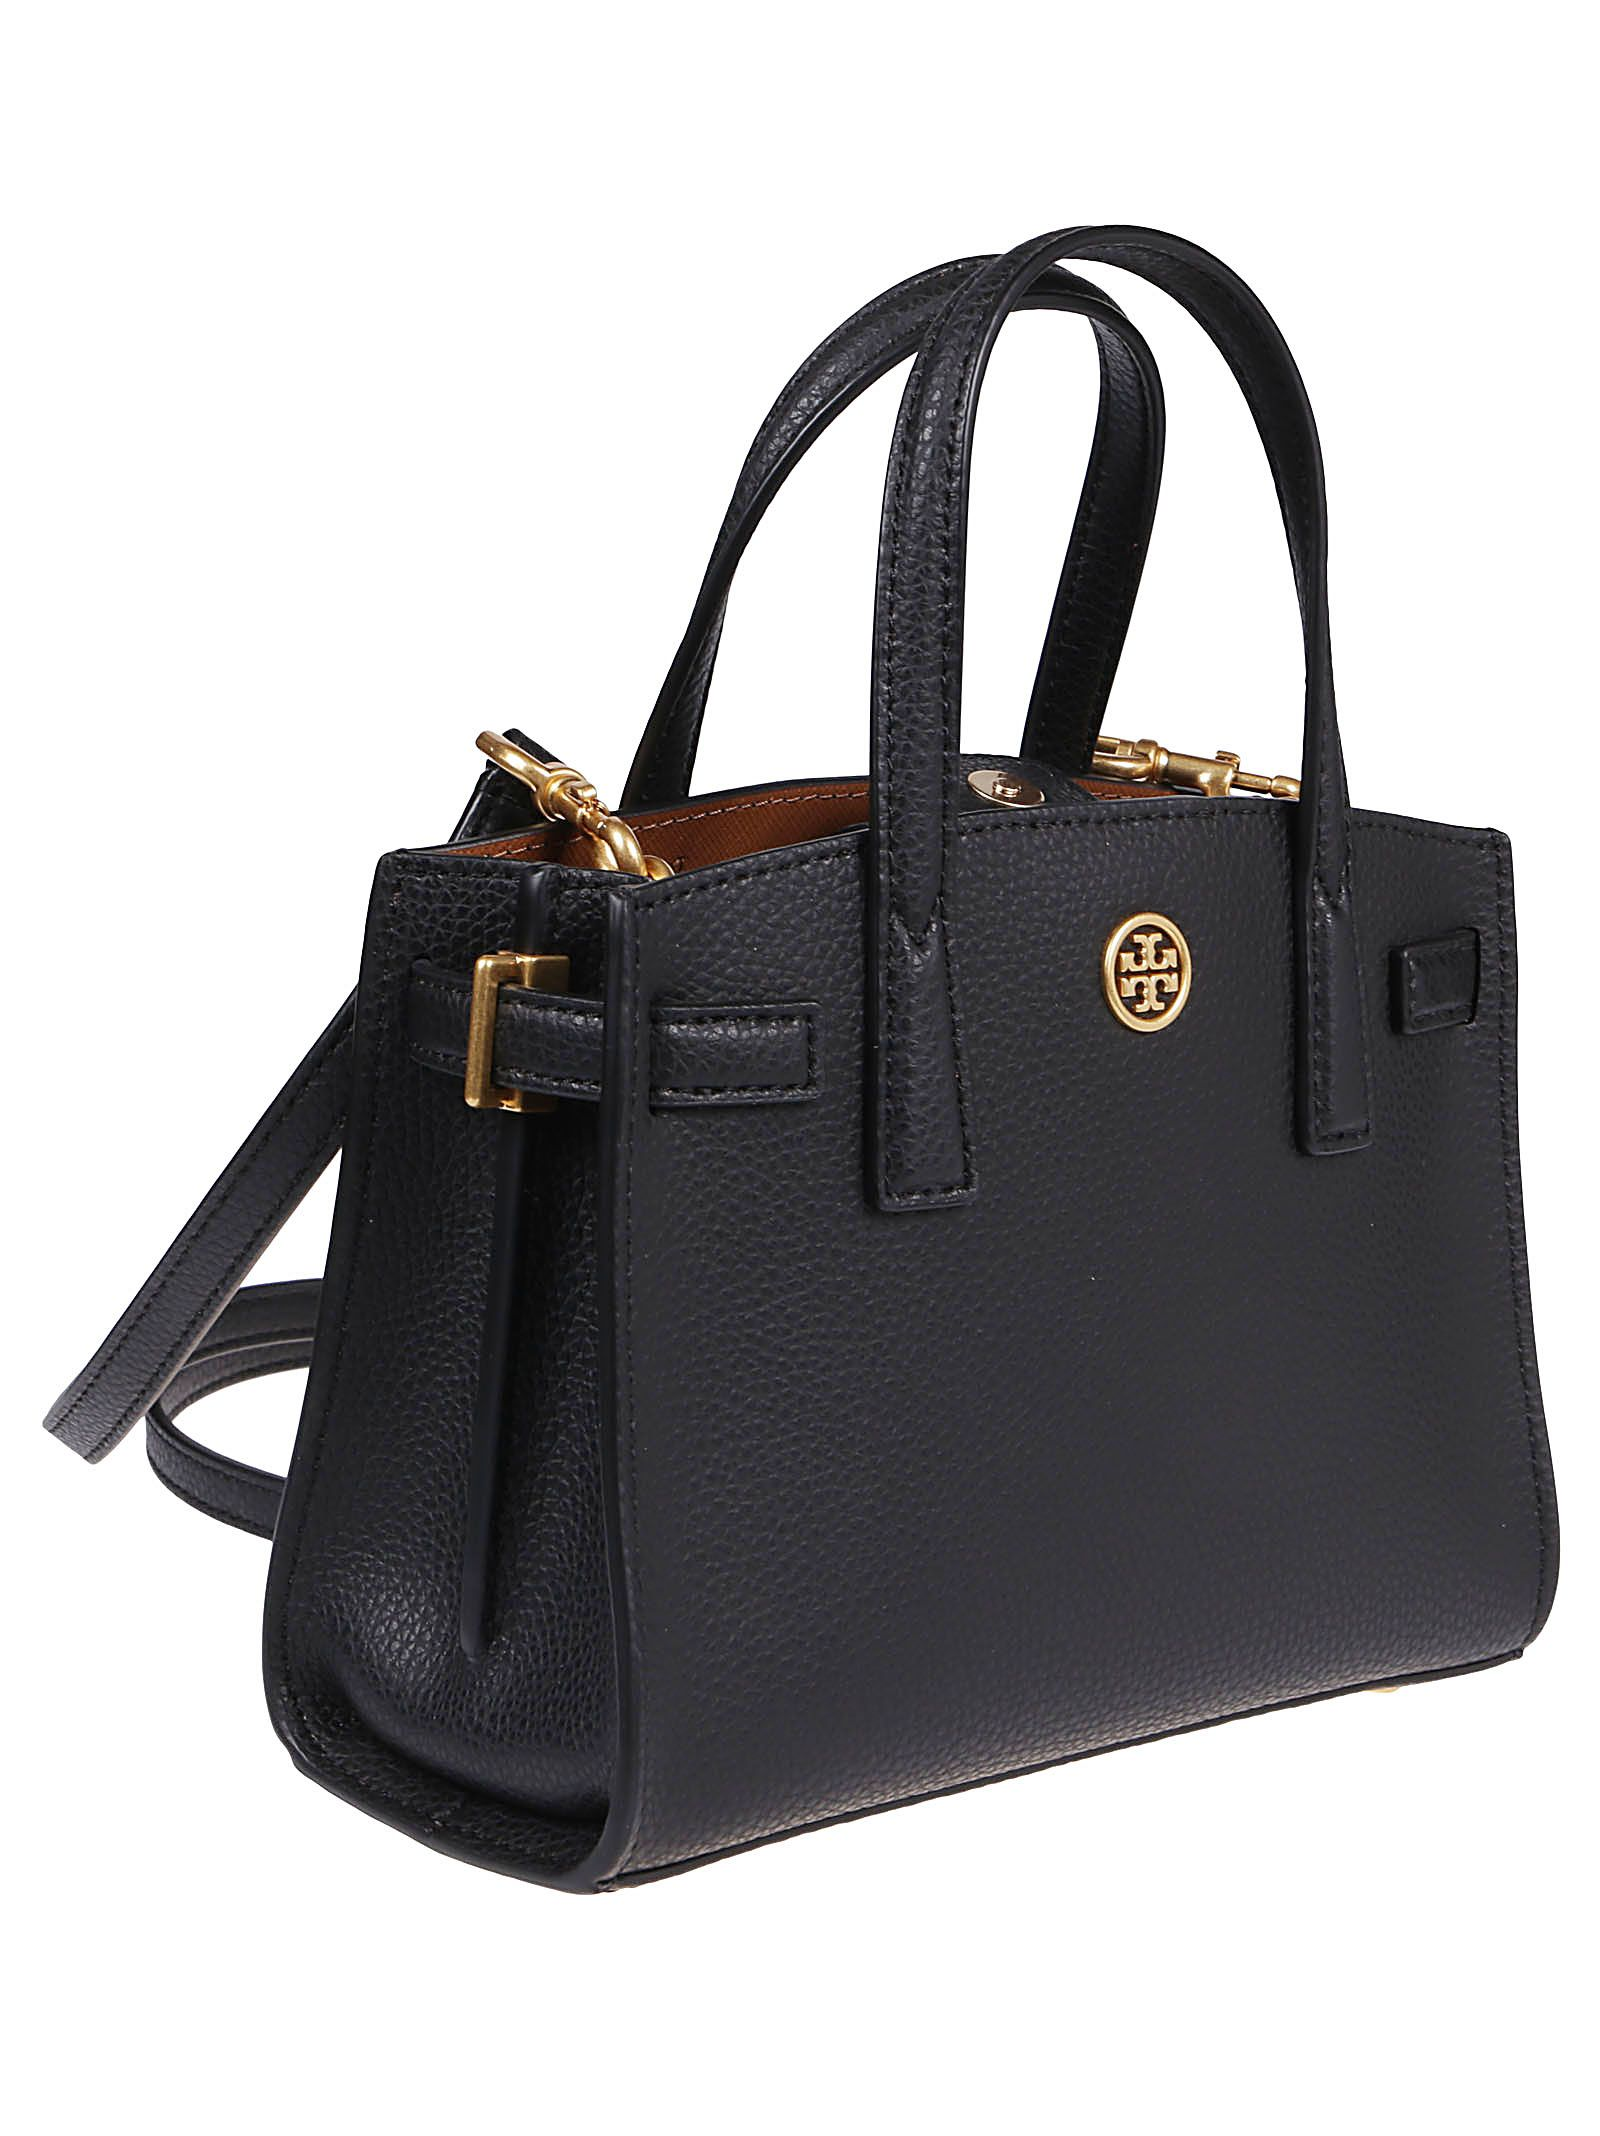 TORY BURCH Leathers TORY BURCH WOMEN'S BLACK OTHER MATERIALS TOTE